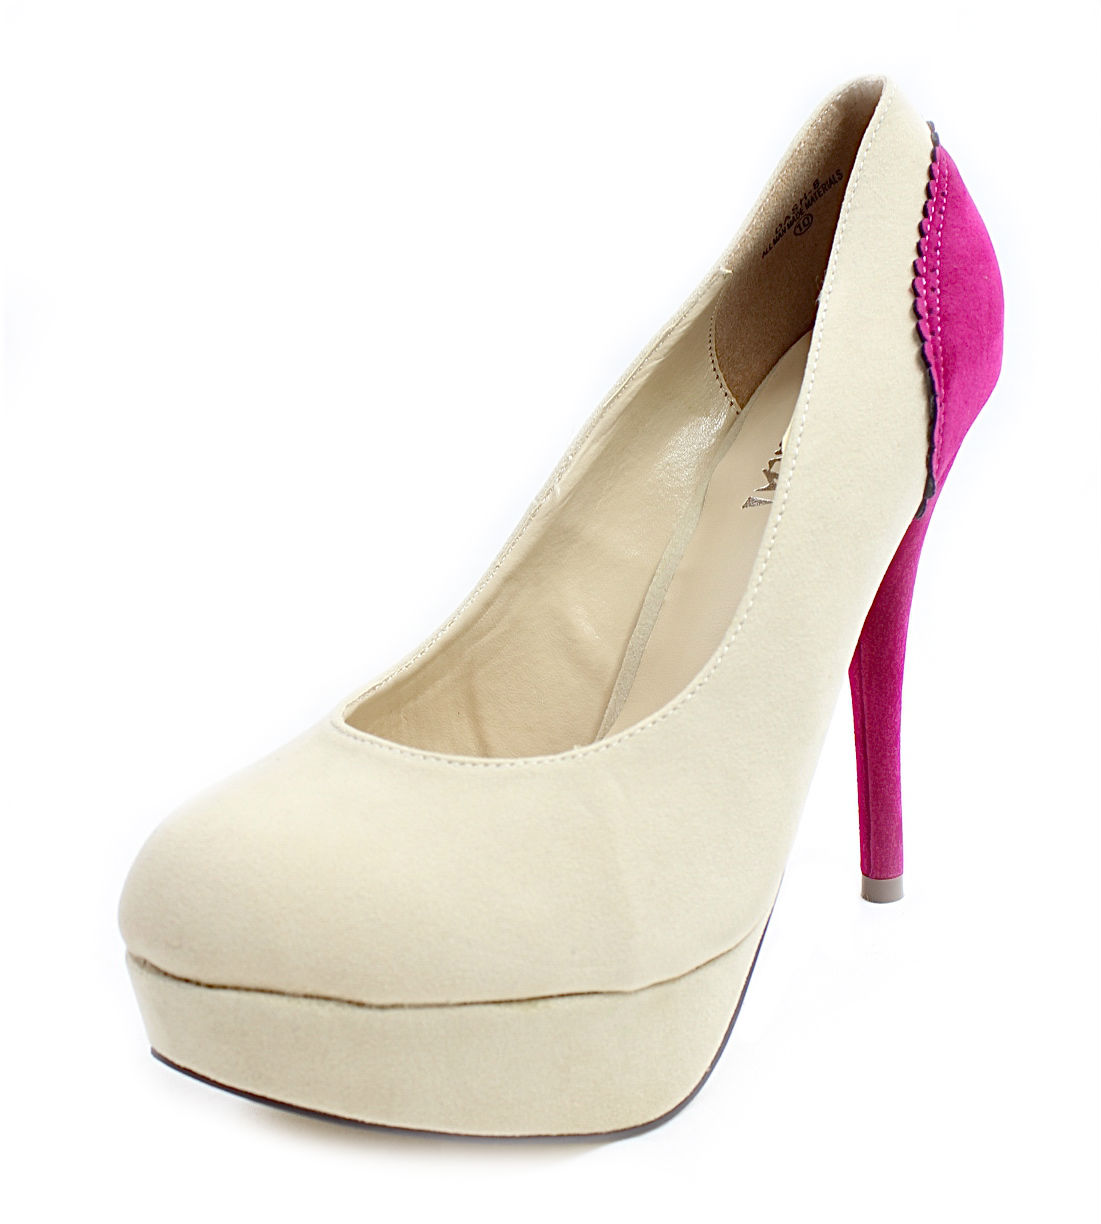 Machi Dash-08 Beige Almond Toe Dress Platform Pumps -1467